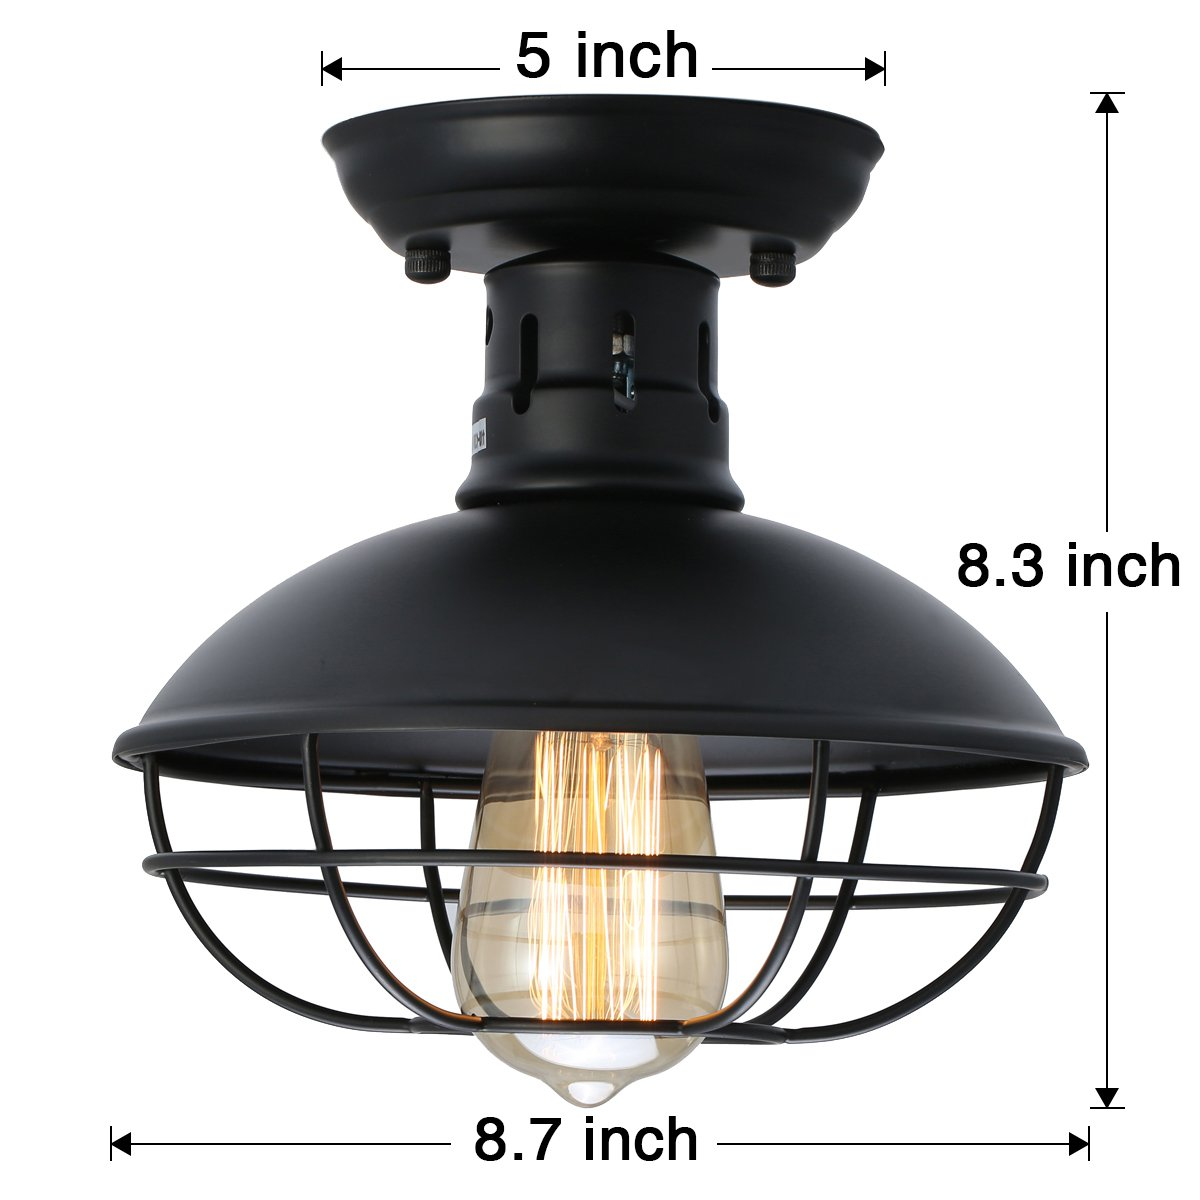 KingSo Industrial Metal Cage Ceiling Light, E26 Rustic Mini Semi Flush Mounted Pendant Lighting Dome/Bowl Shaped Lamp Fixture for Country Hallway Kitchen Garage Porch Bathroom by KINGSO (Image #6)